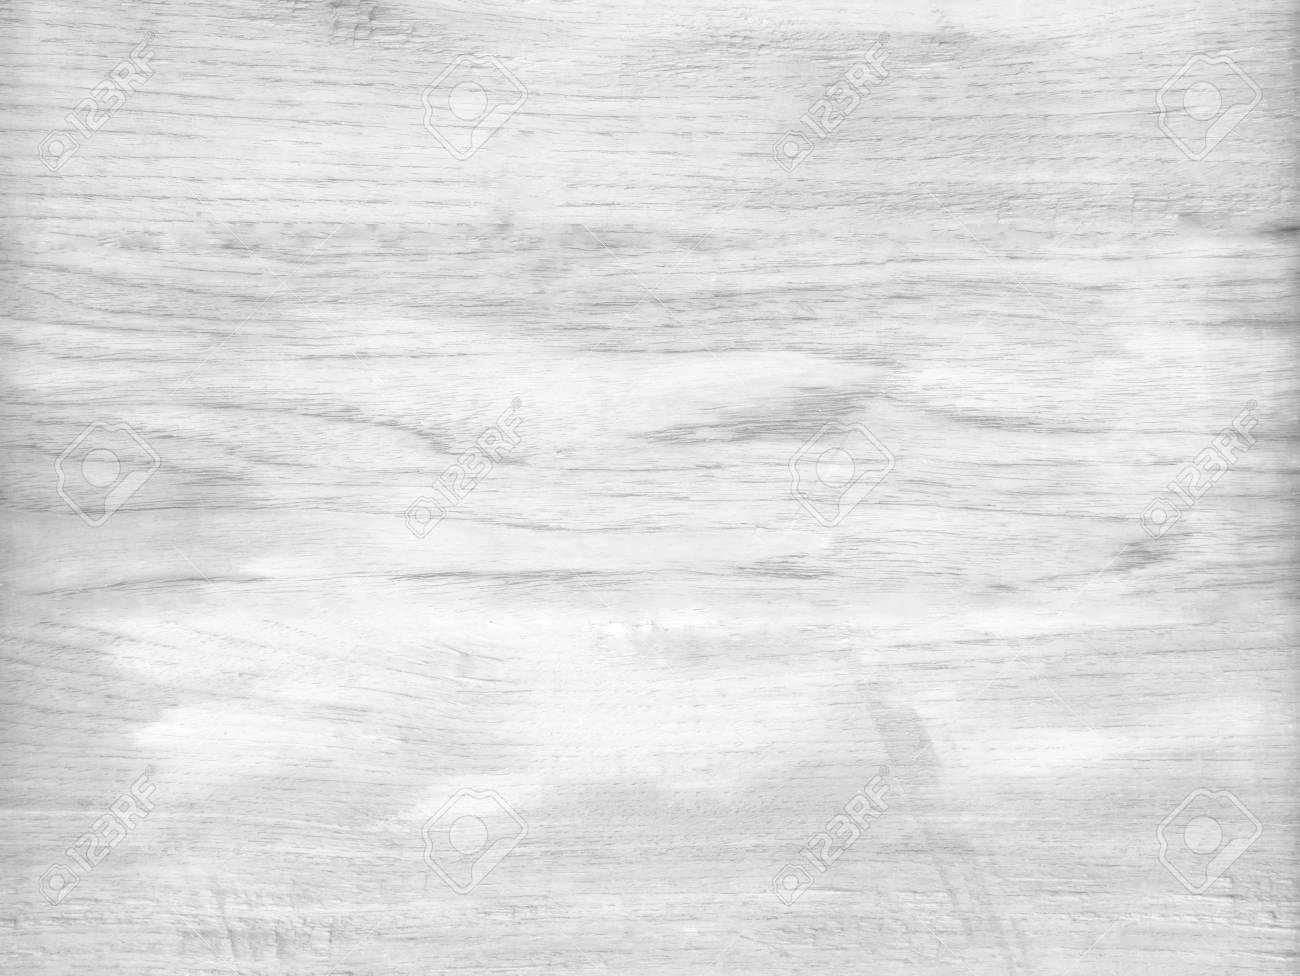 Stock Photo   White Painted Wood Texture Seamless Background